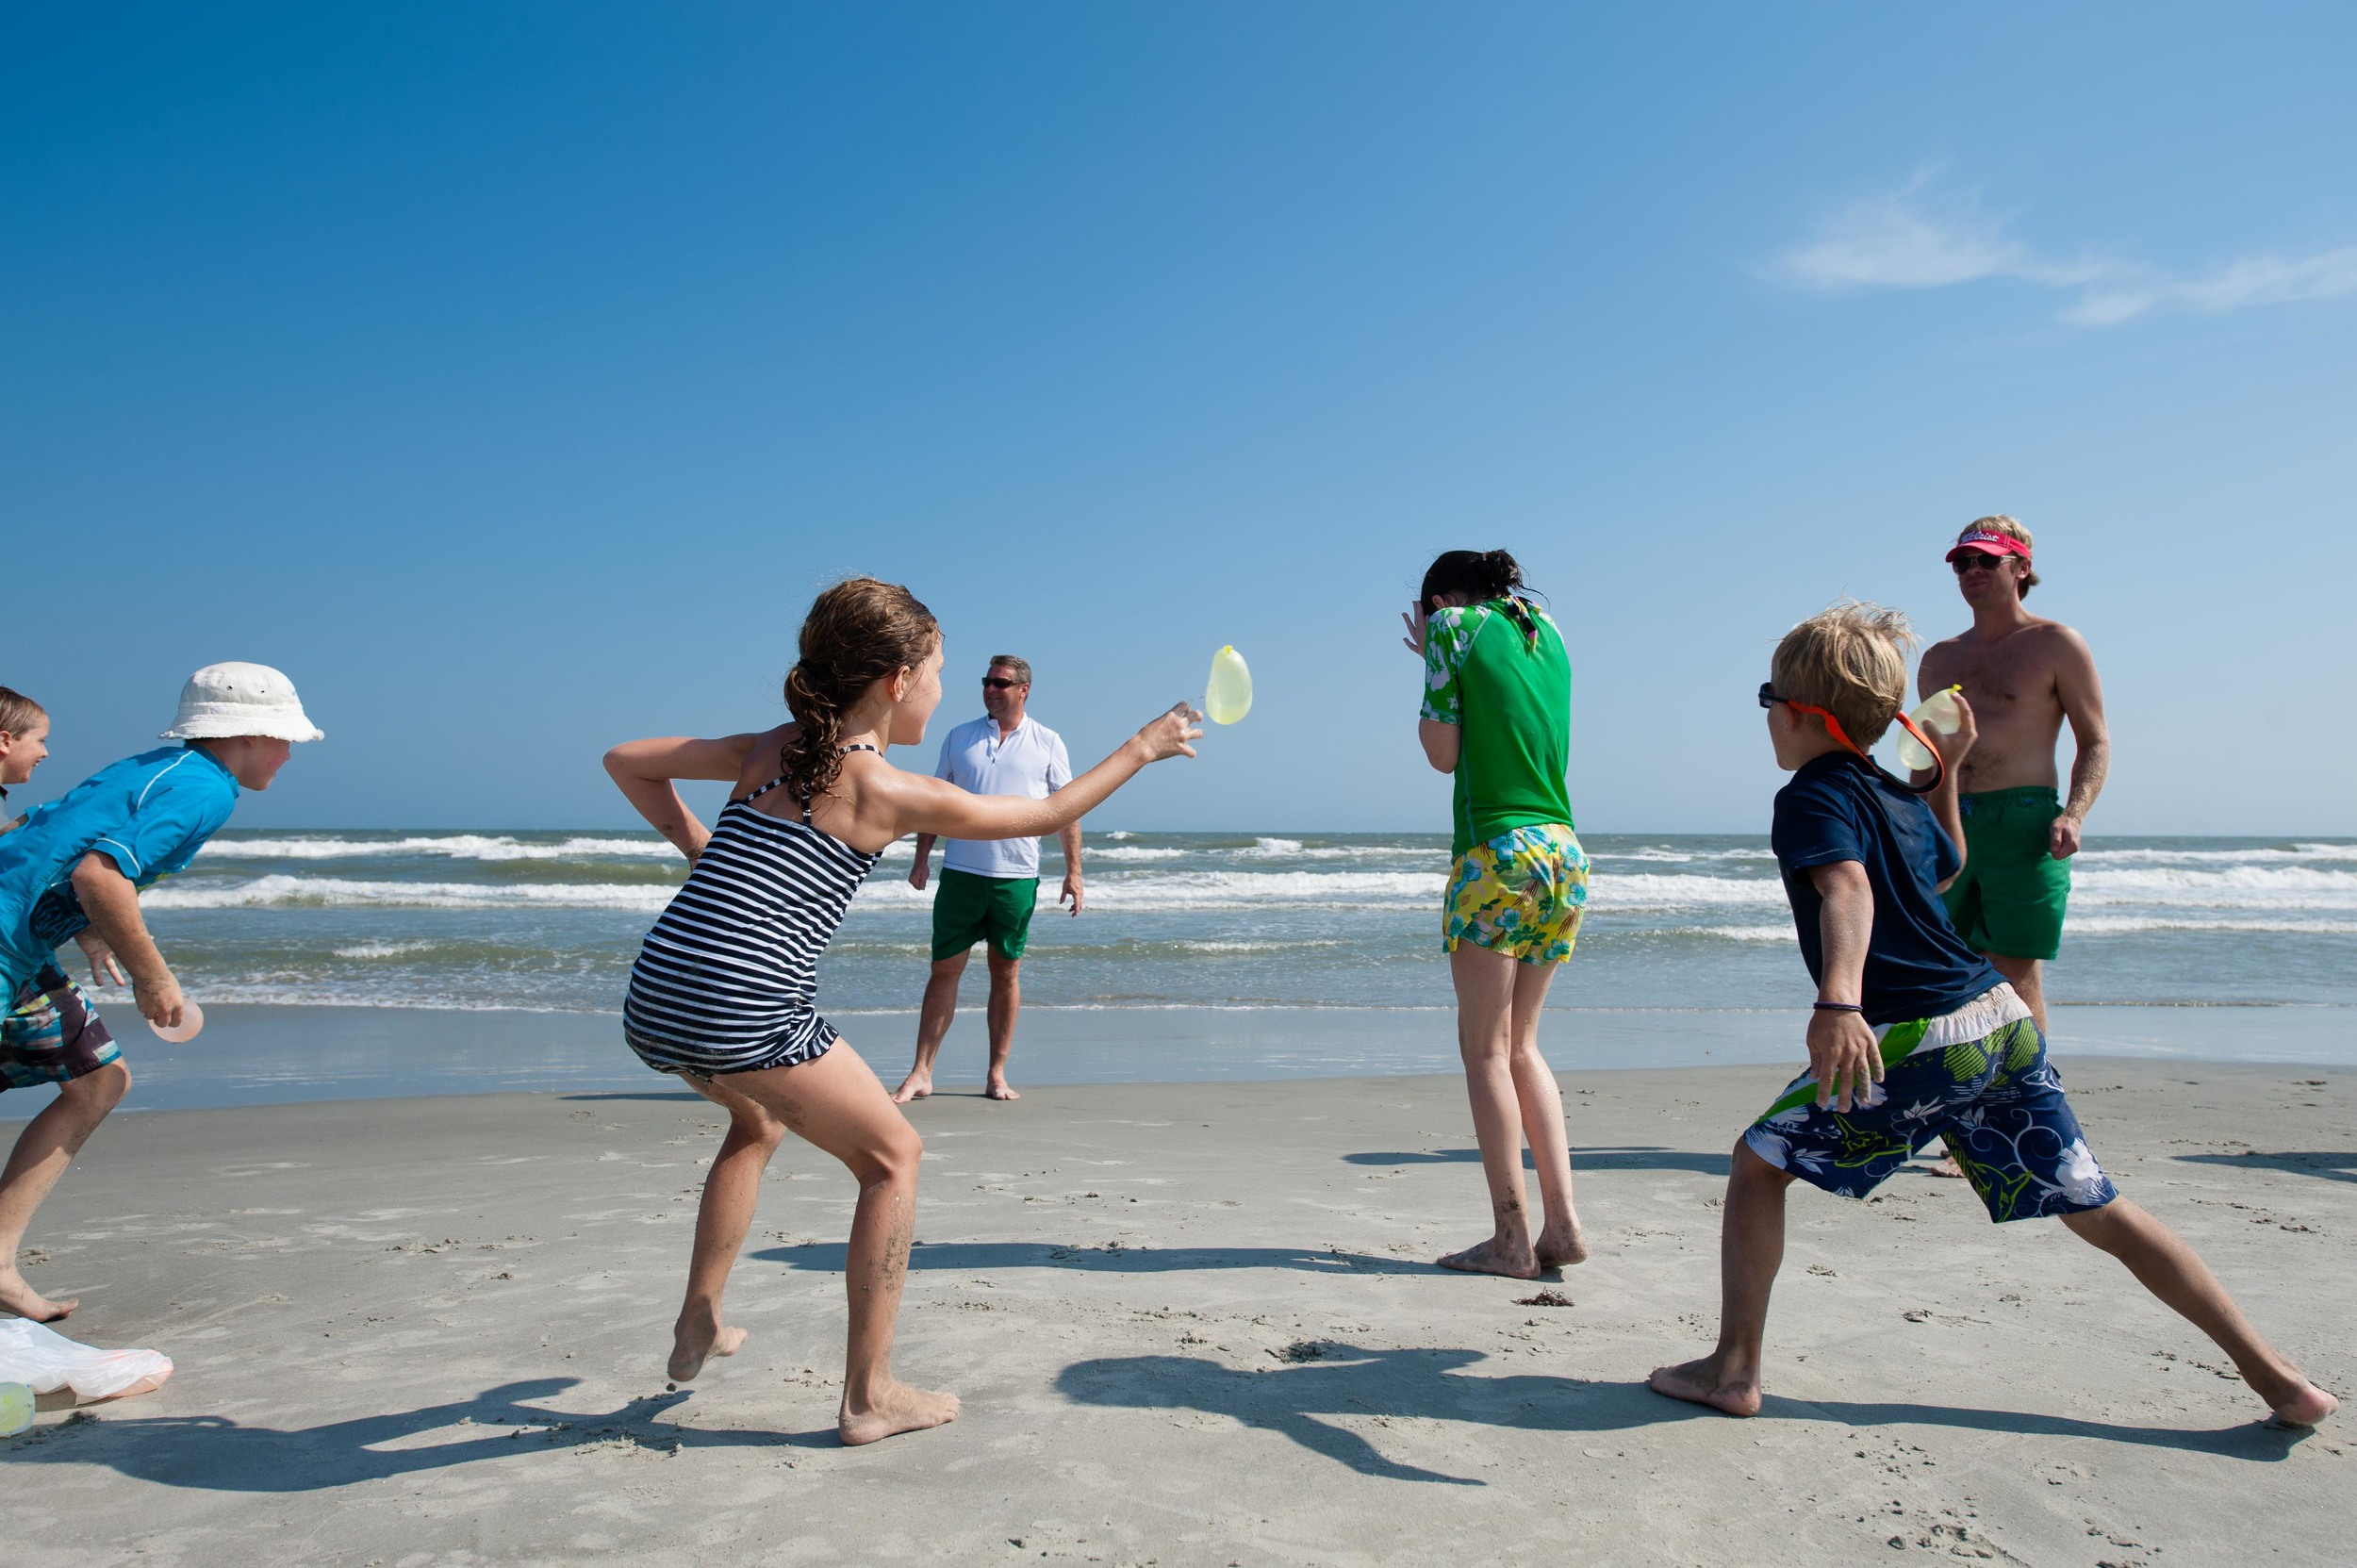 As is tradition, we ended the final hours on the beach with a water balloon fight.  One hour of filling balloons for three minutes of launching them at cousins and friends.  Kinda like cooking for Thanksgiving dinner.